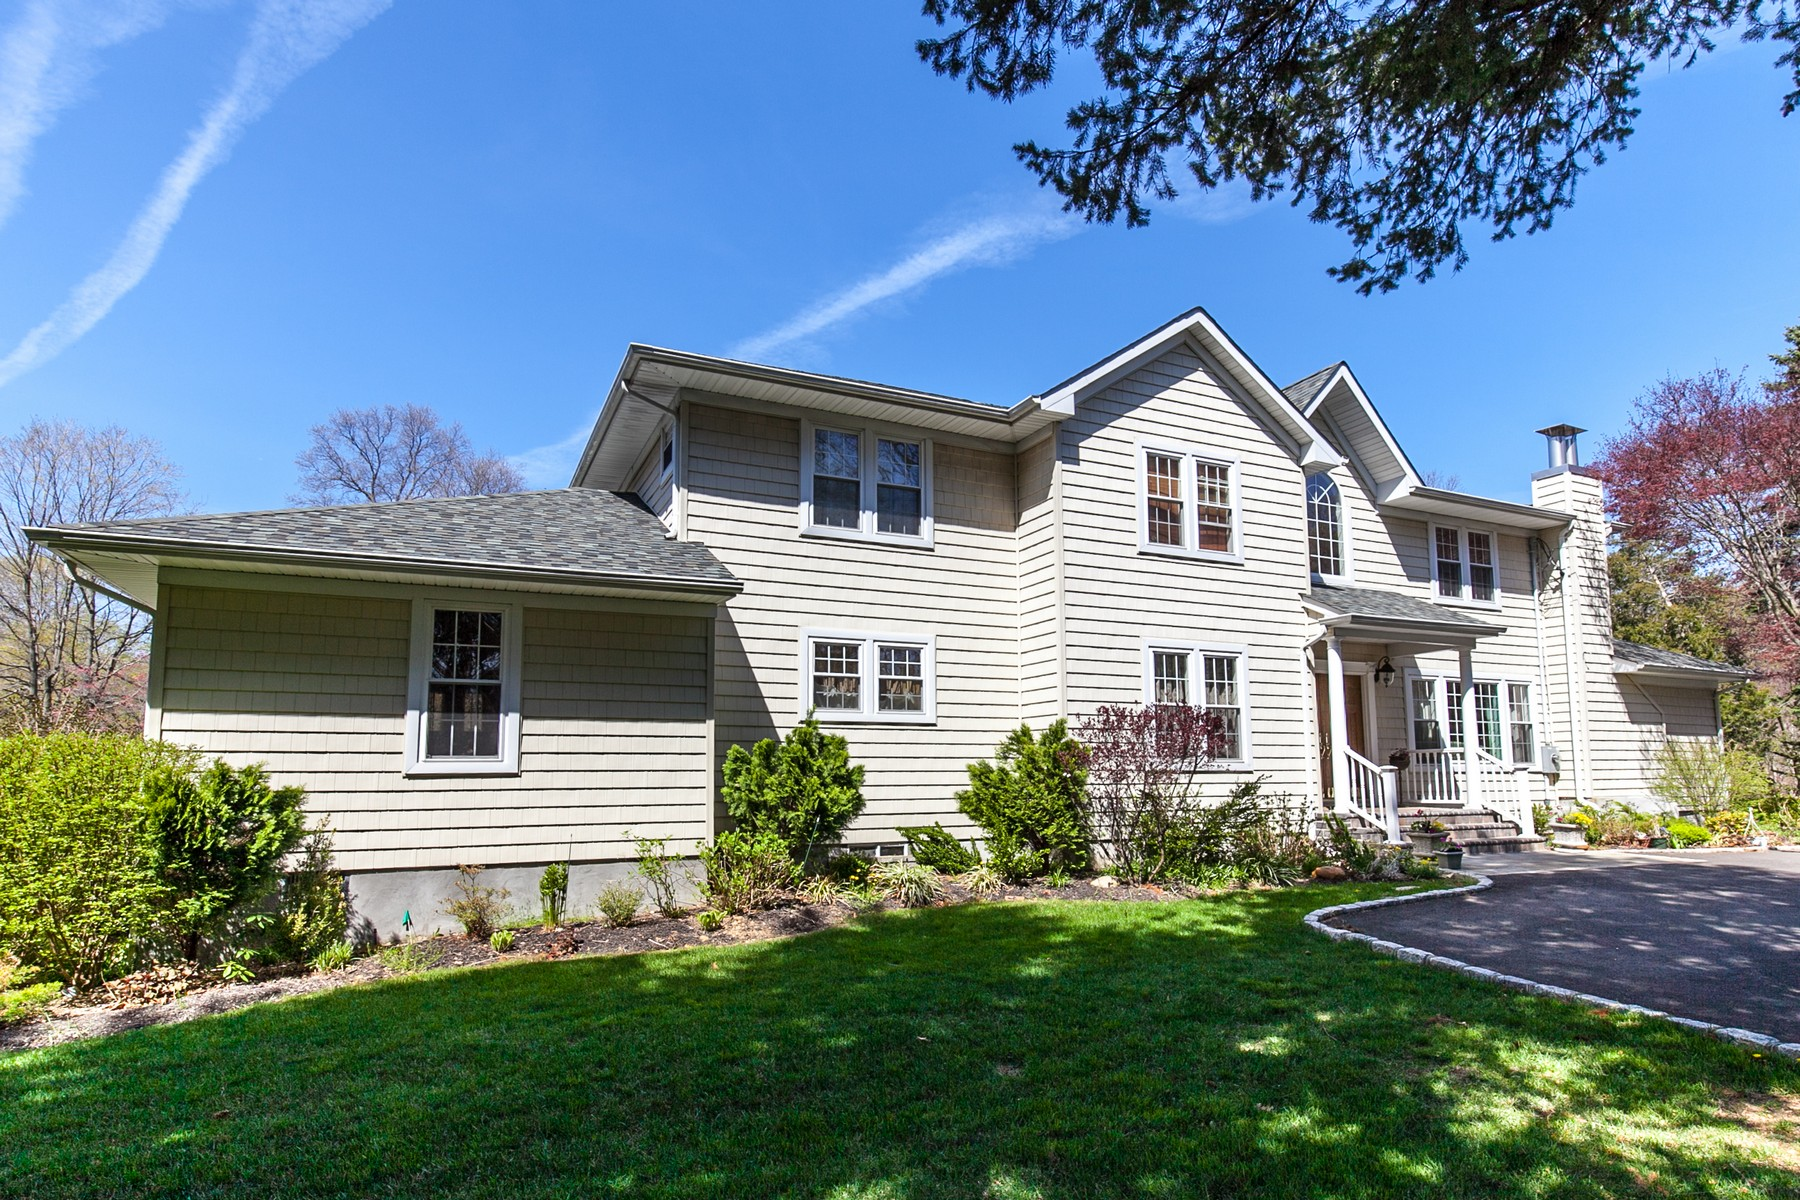 Single Family Home for Sale at Colonial 16 Oak Ln Northport, New York, 11768 United States